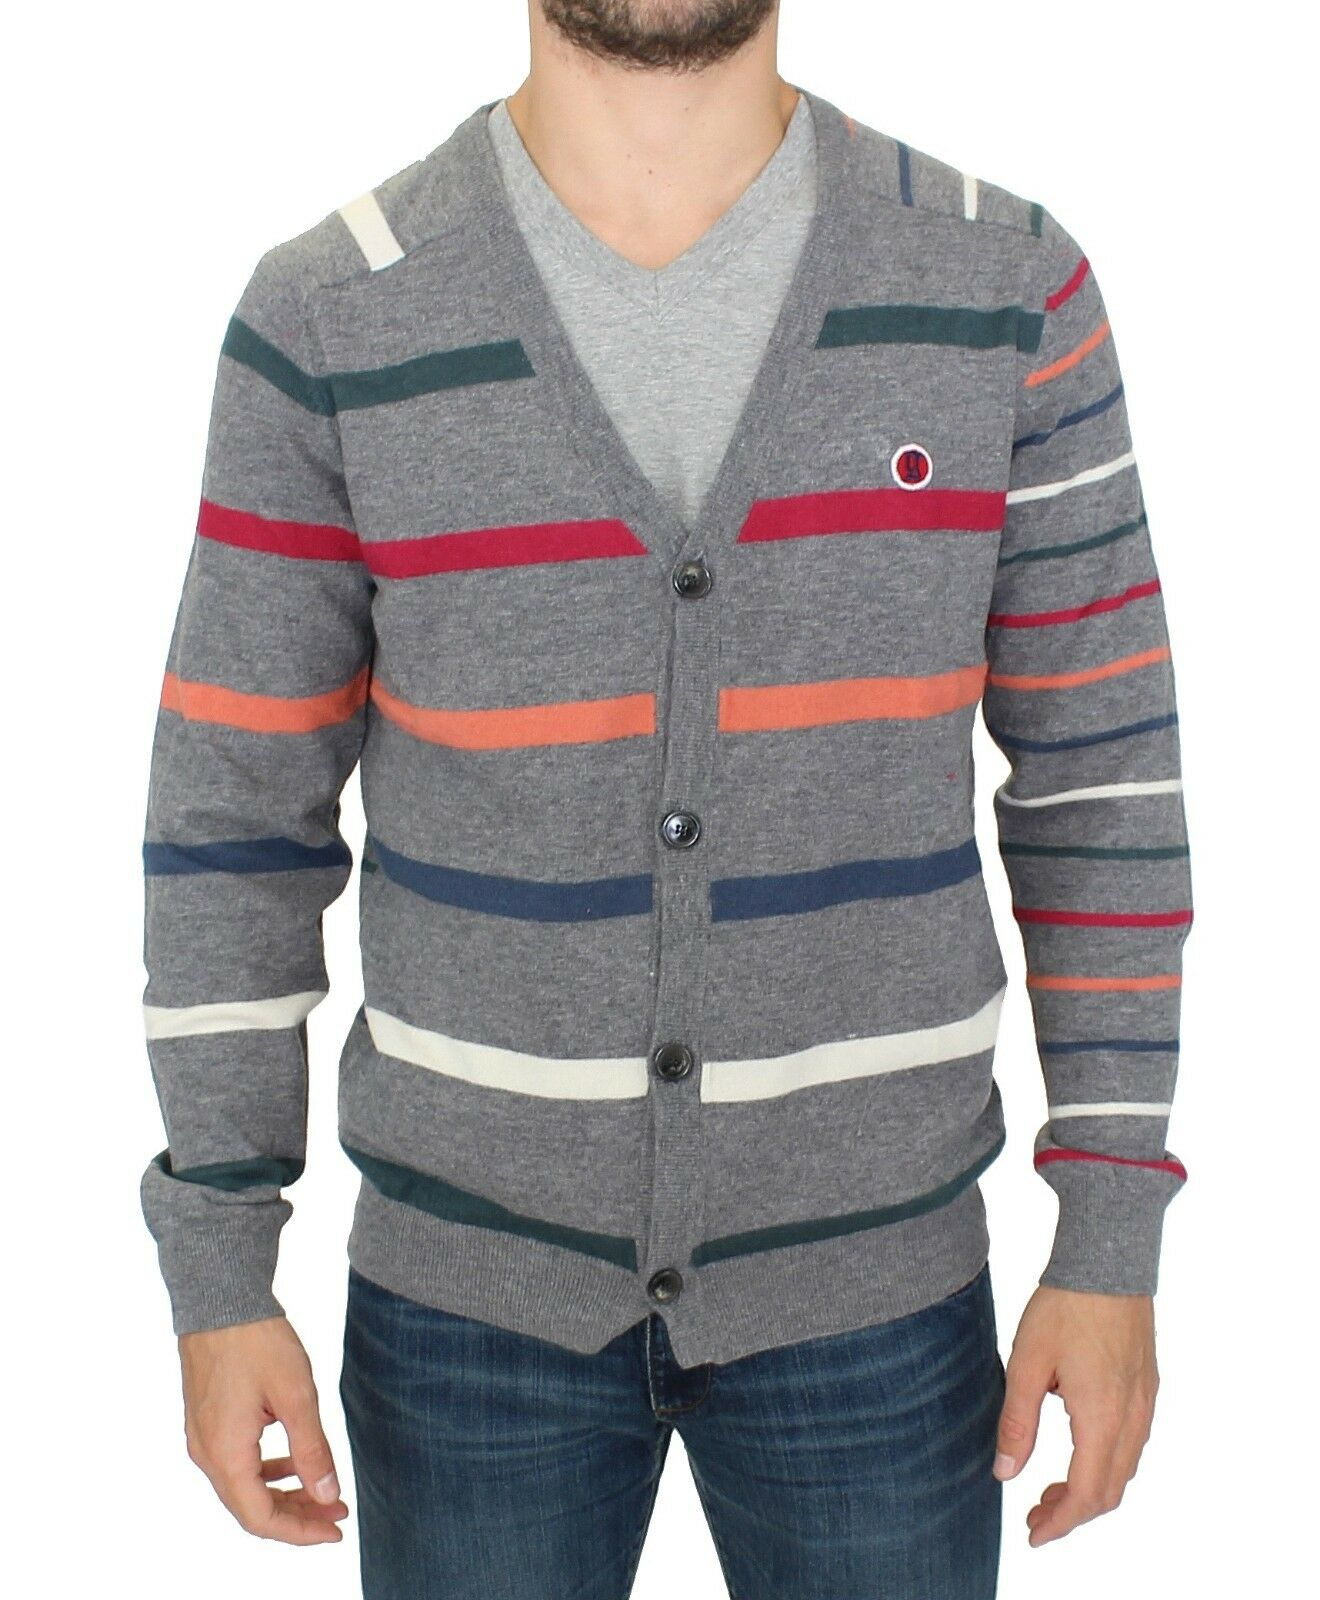 NEW GALLIANO grau Multicolor Striped Wool Button Down Cardigan Sweater s XL